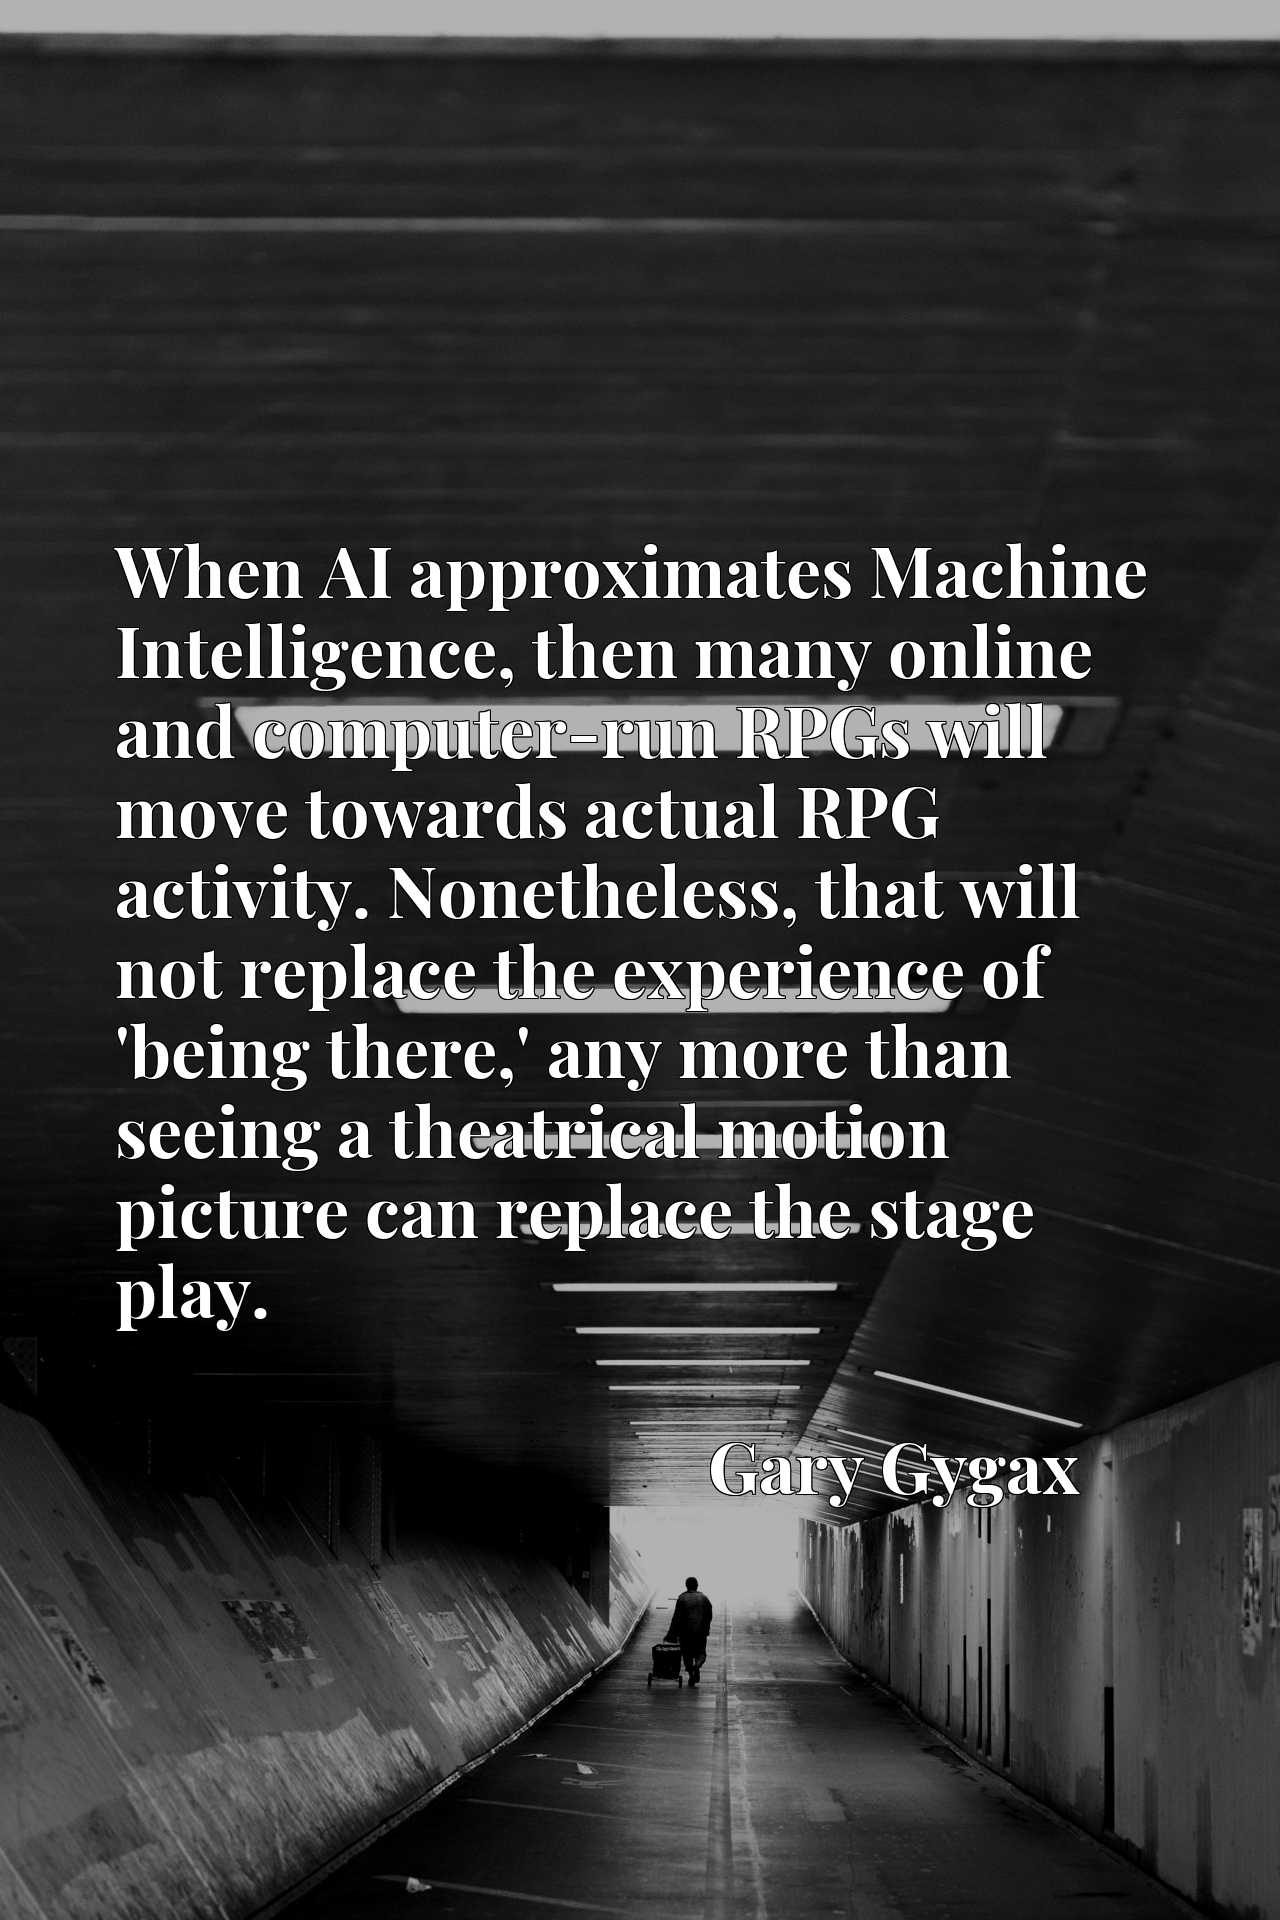 When AI approximates Machine Intelligence, then many online and computer-run RPGs will move towards actual RPG activity. Nonetheless, that will not replace the experience of 'being there,' any more than seeing a theatrical motion picture can replace the stage play.